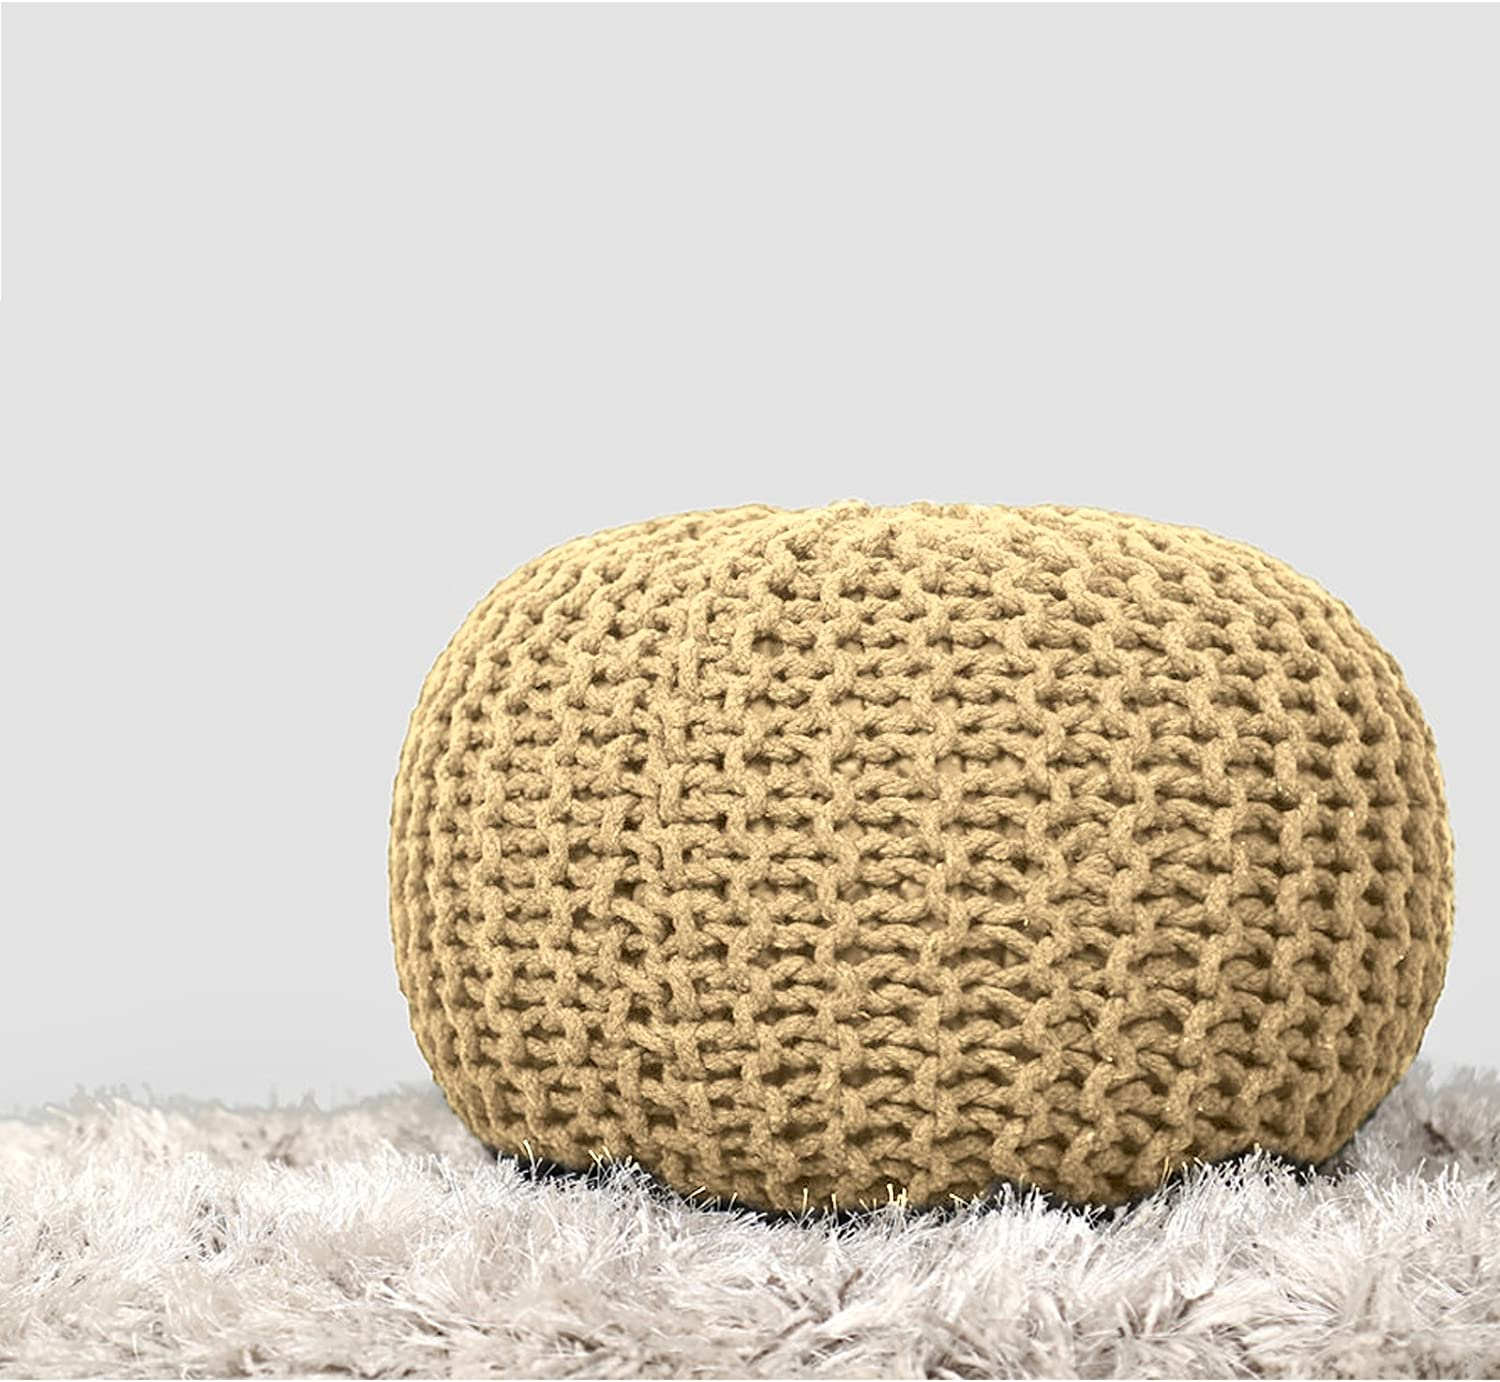 Cotton Braided Cord Stuffed Ottoman - Floor Pouf Modern Small Space Patio Seating Footstool Children Room Furniture - Yellow - D-20 x H-14 inch